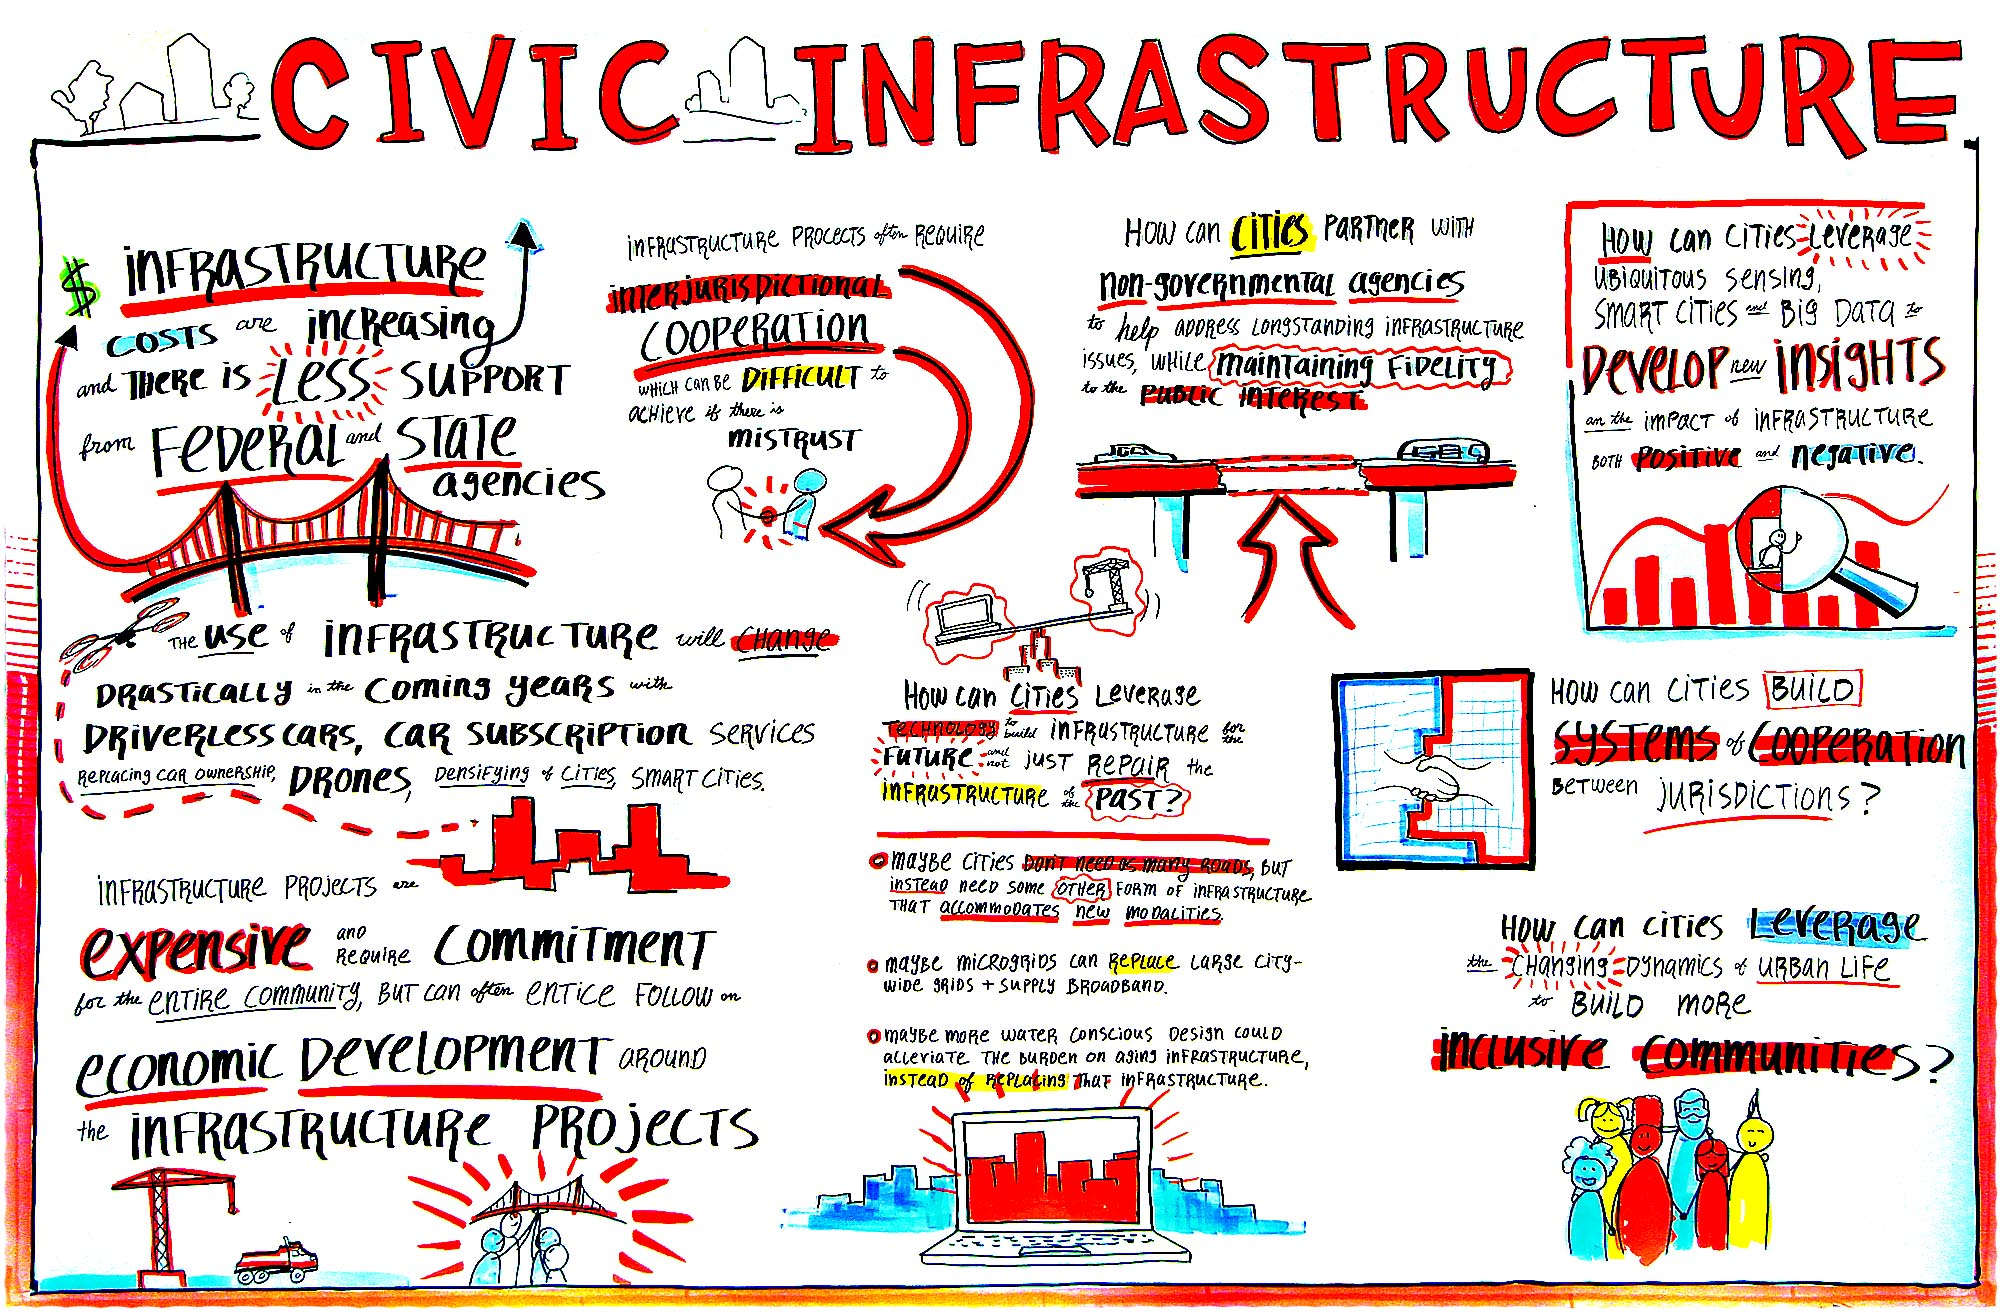 Civic Infrastructure - Scribing 2 | Mayors Conference 2017